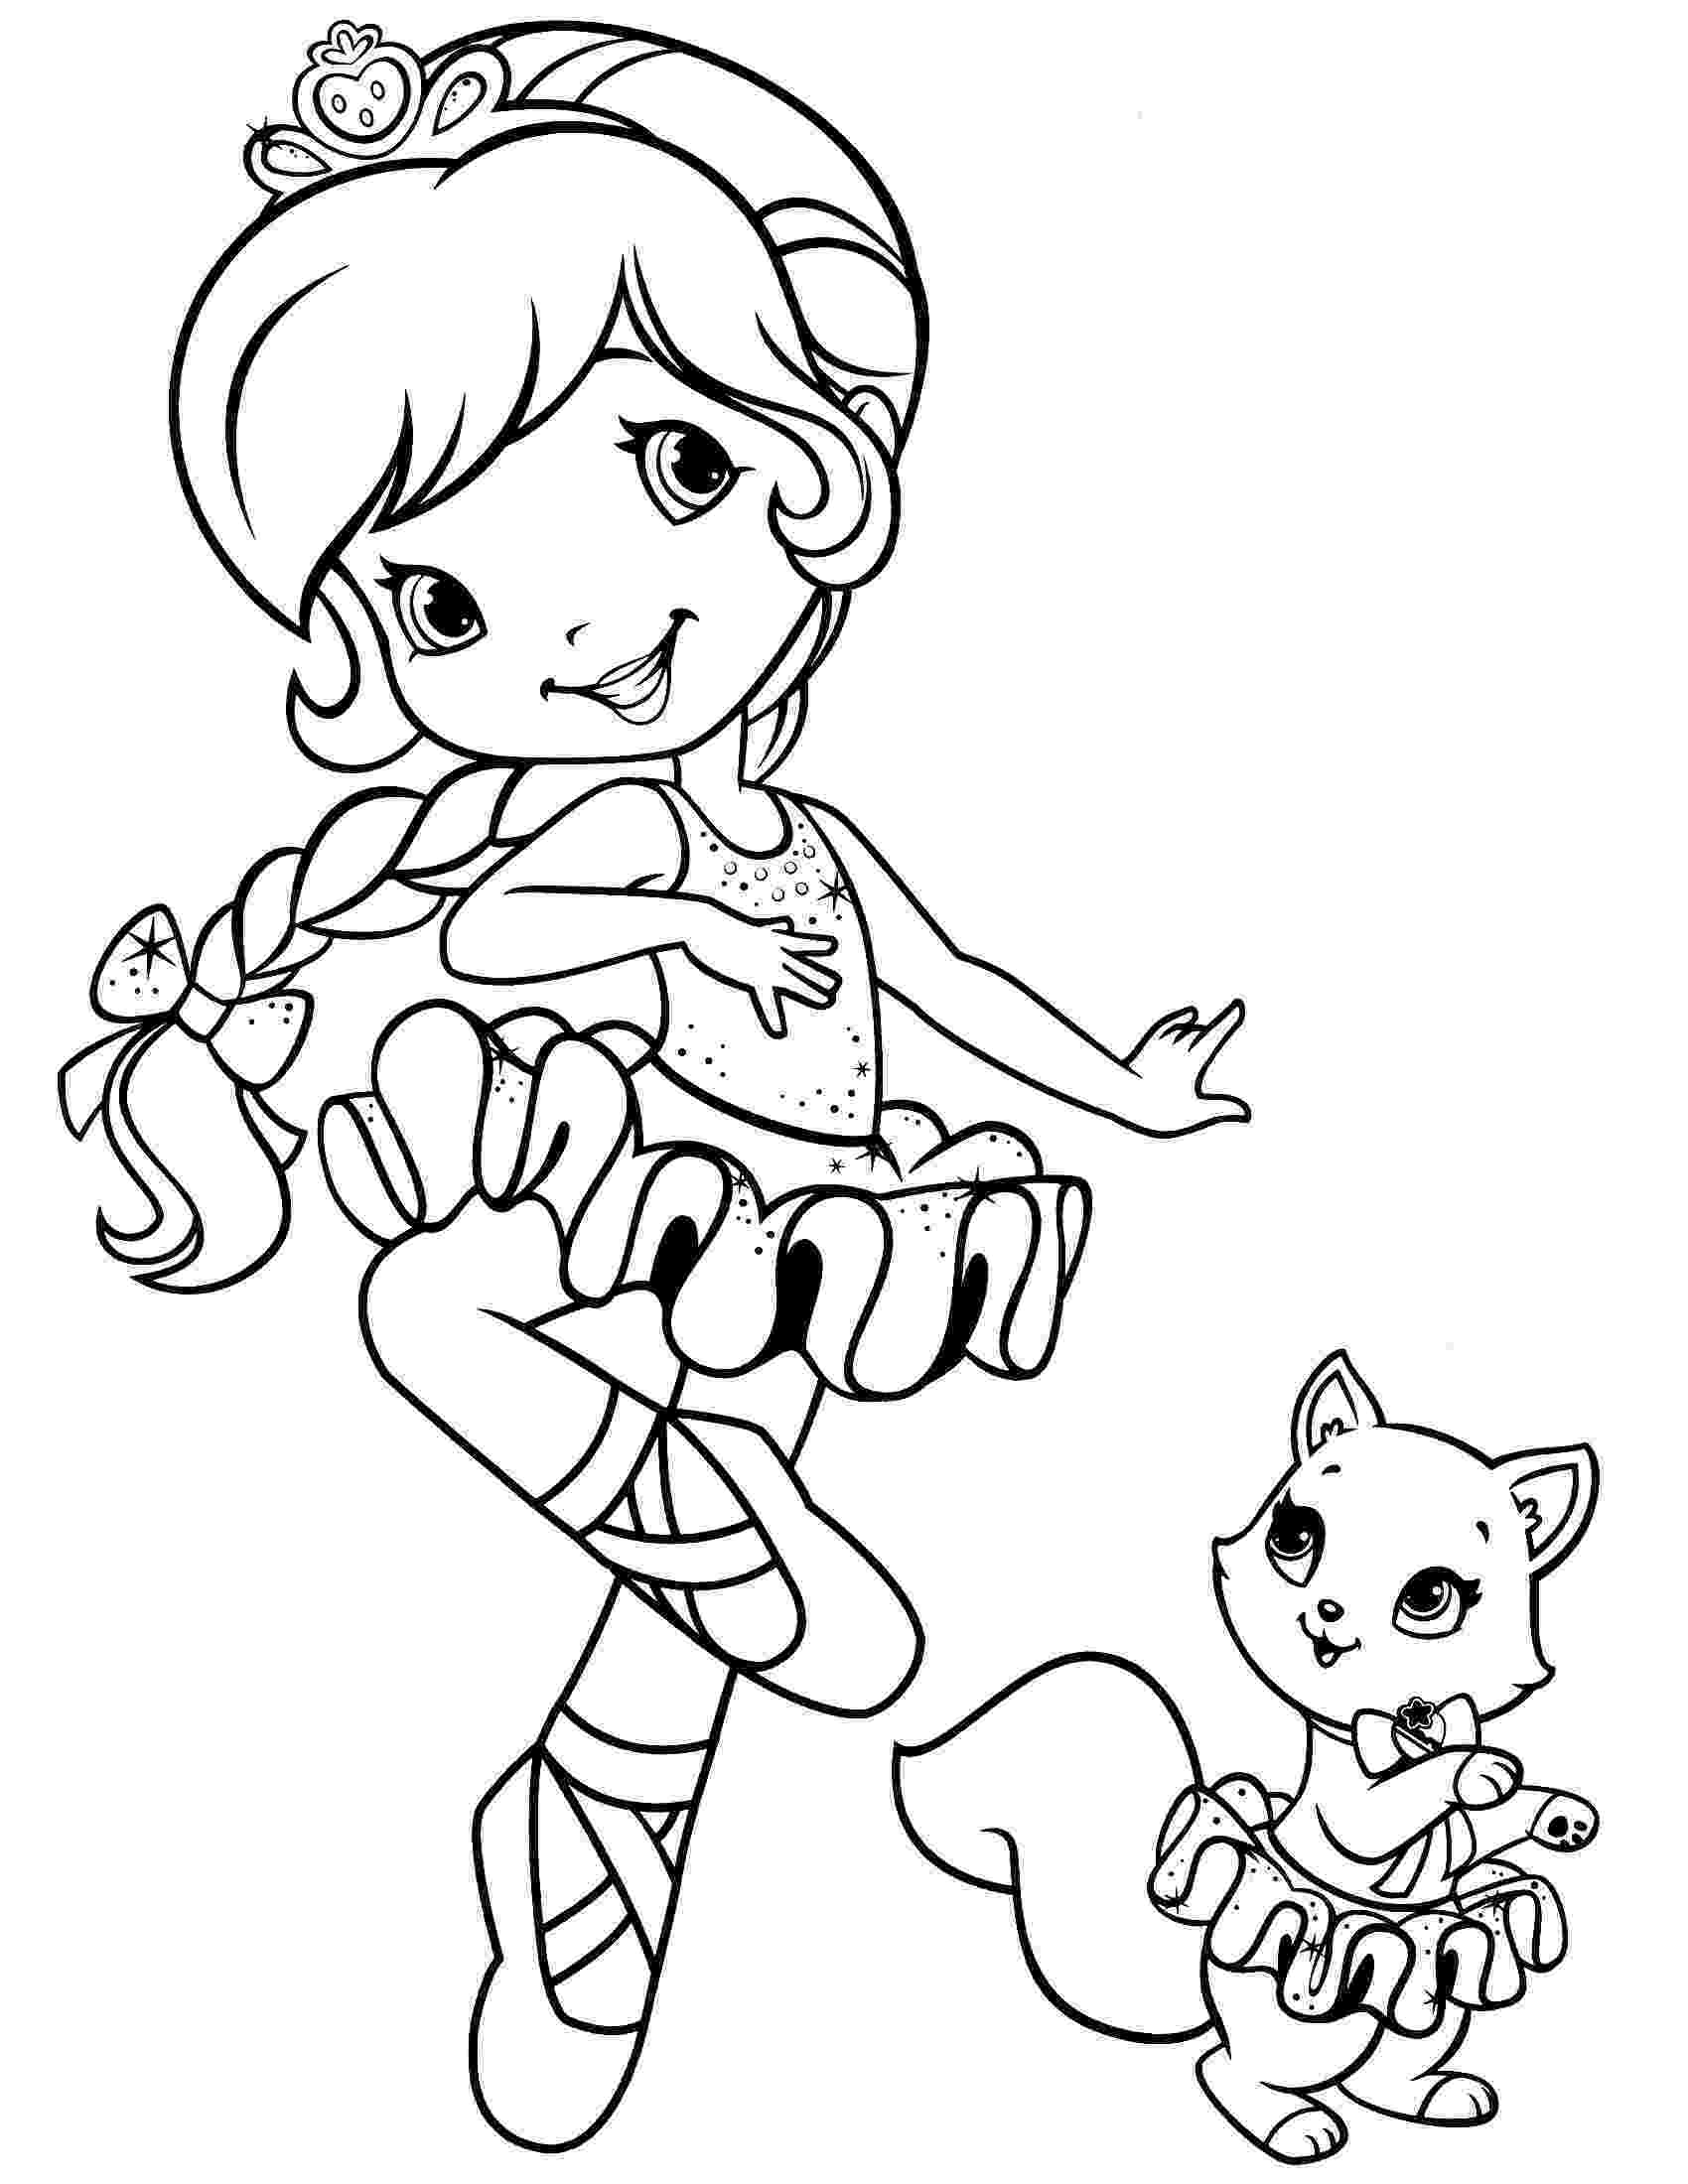 pictures of strawberry shortcake strawberry shortcake coloring page strawberry shortcake of strawberry pictures shortcake